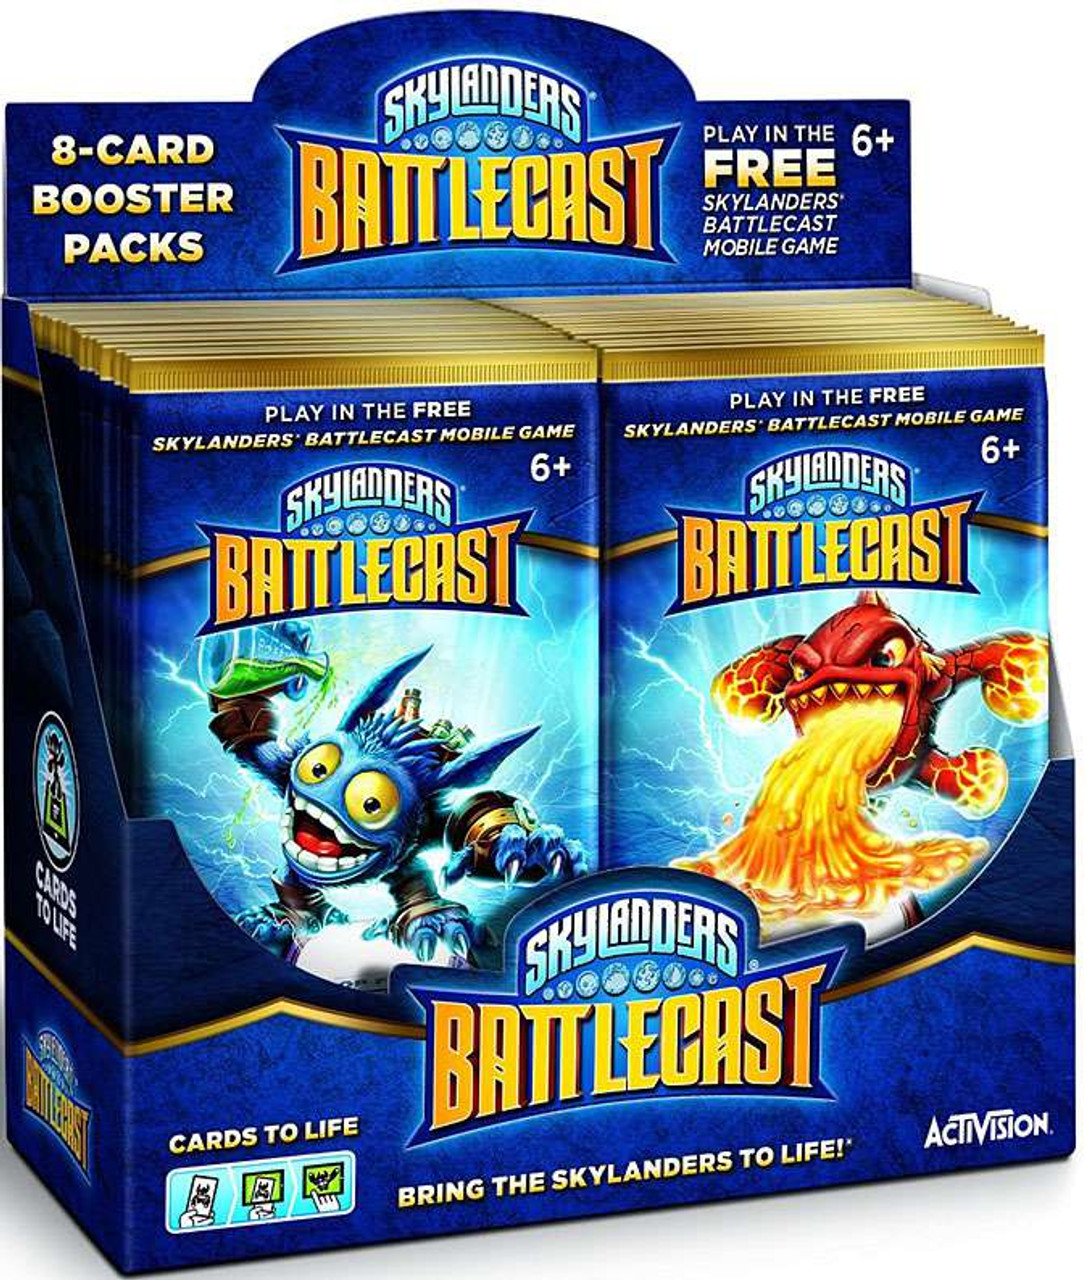 skylanders battlecast instructions